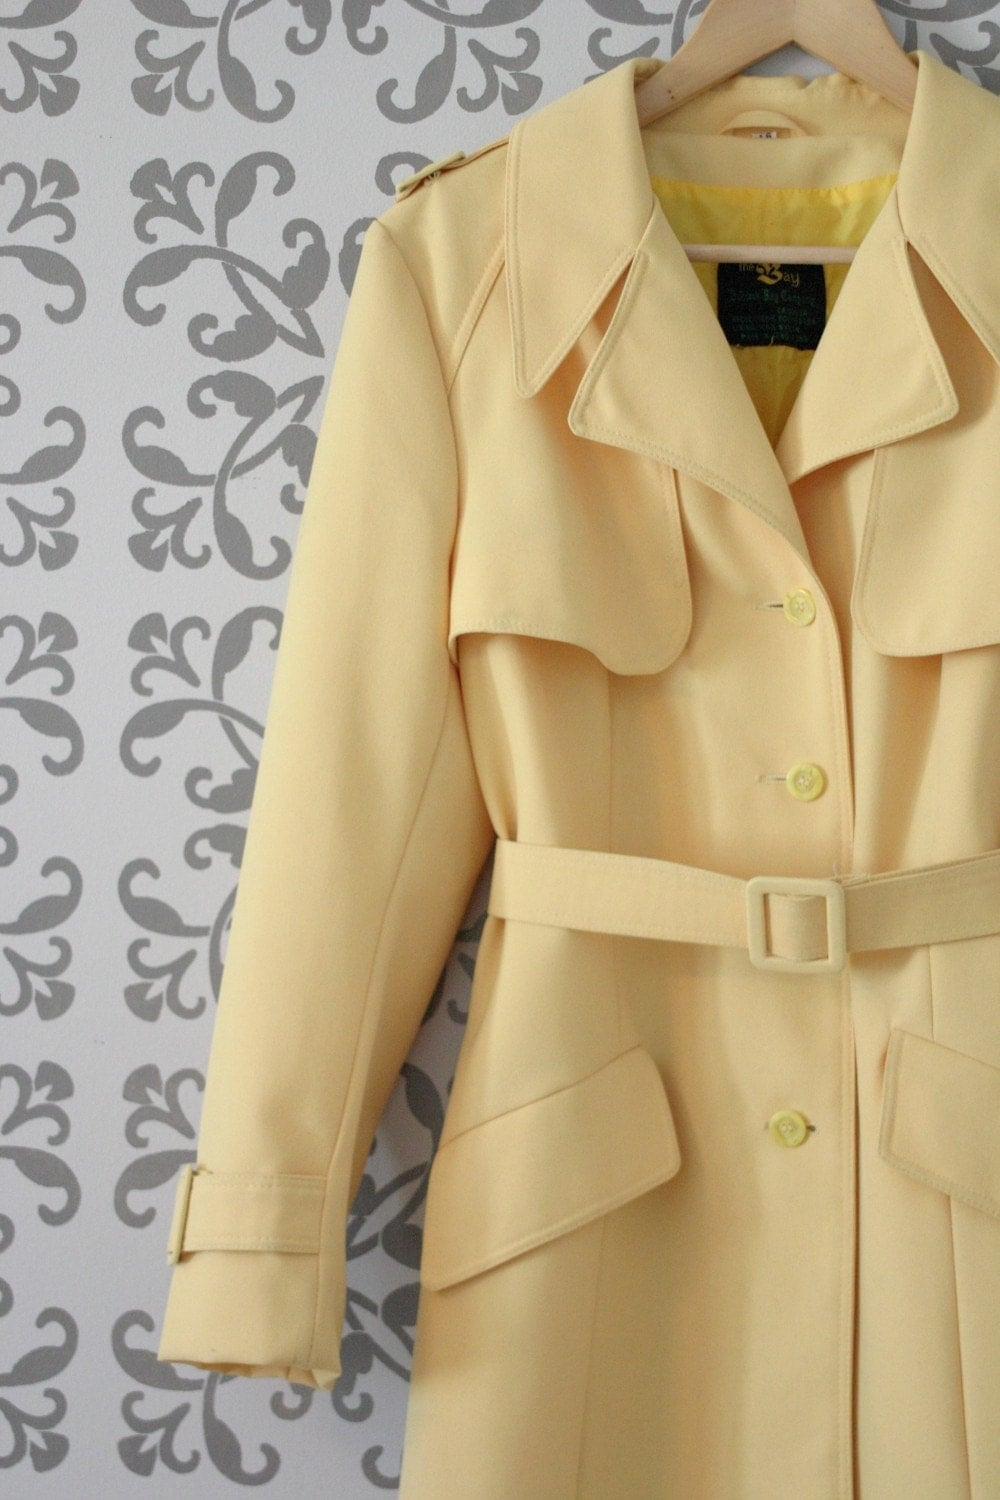 The Lemon Drop: Sunny Yellow 1970s Vintage Trench Coat, size medium-large